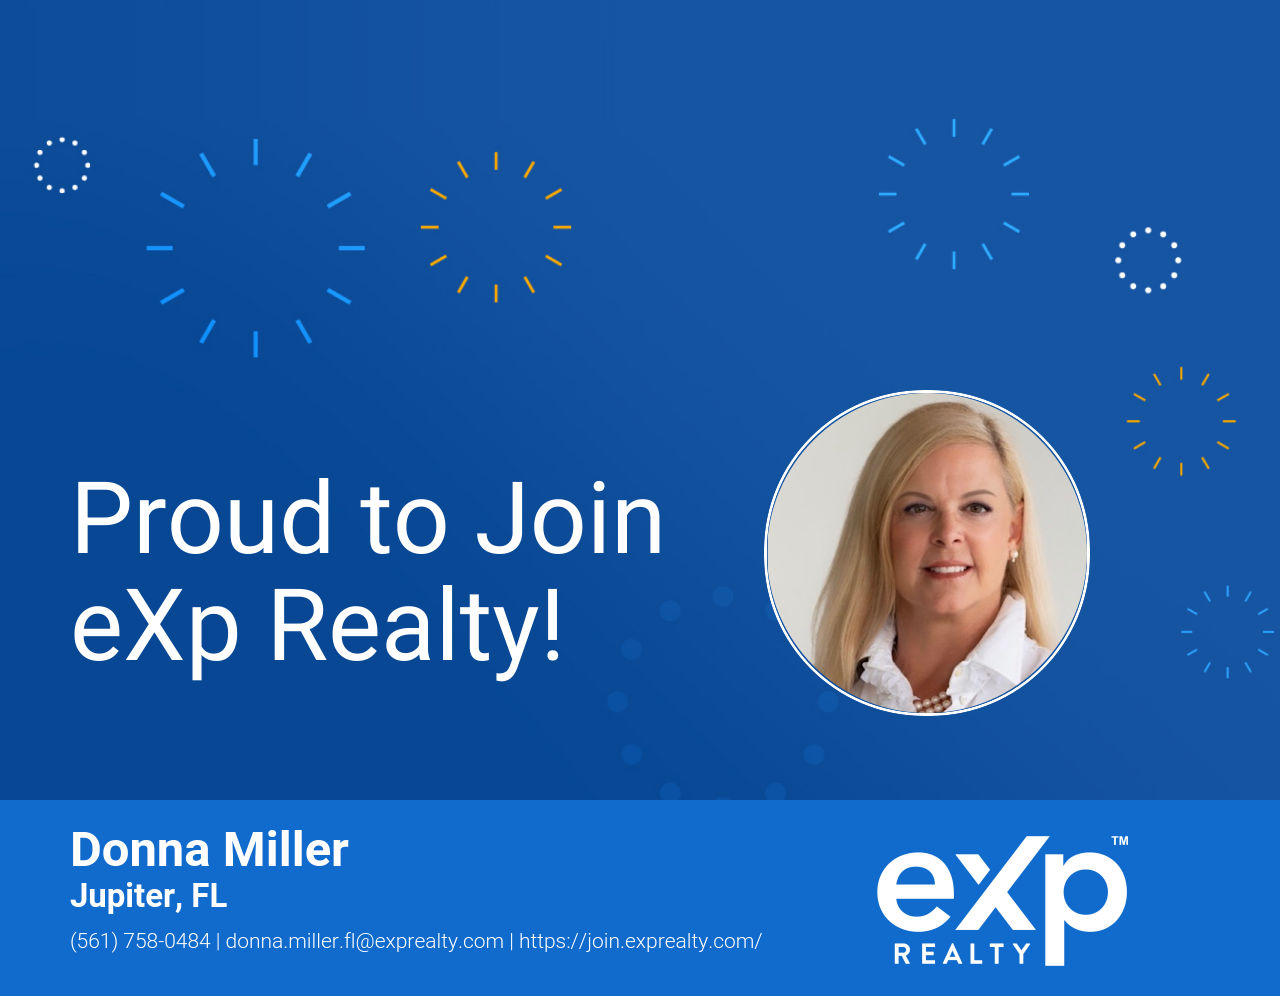 Donna Miller Joined eXp Realty!